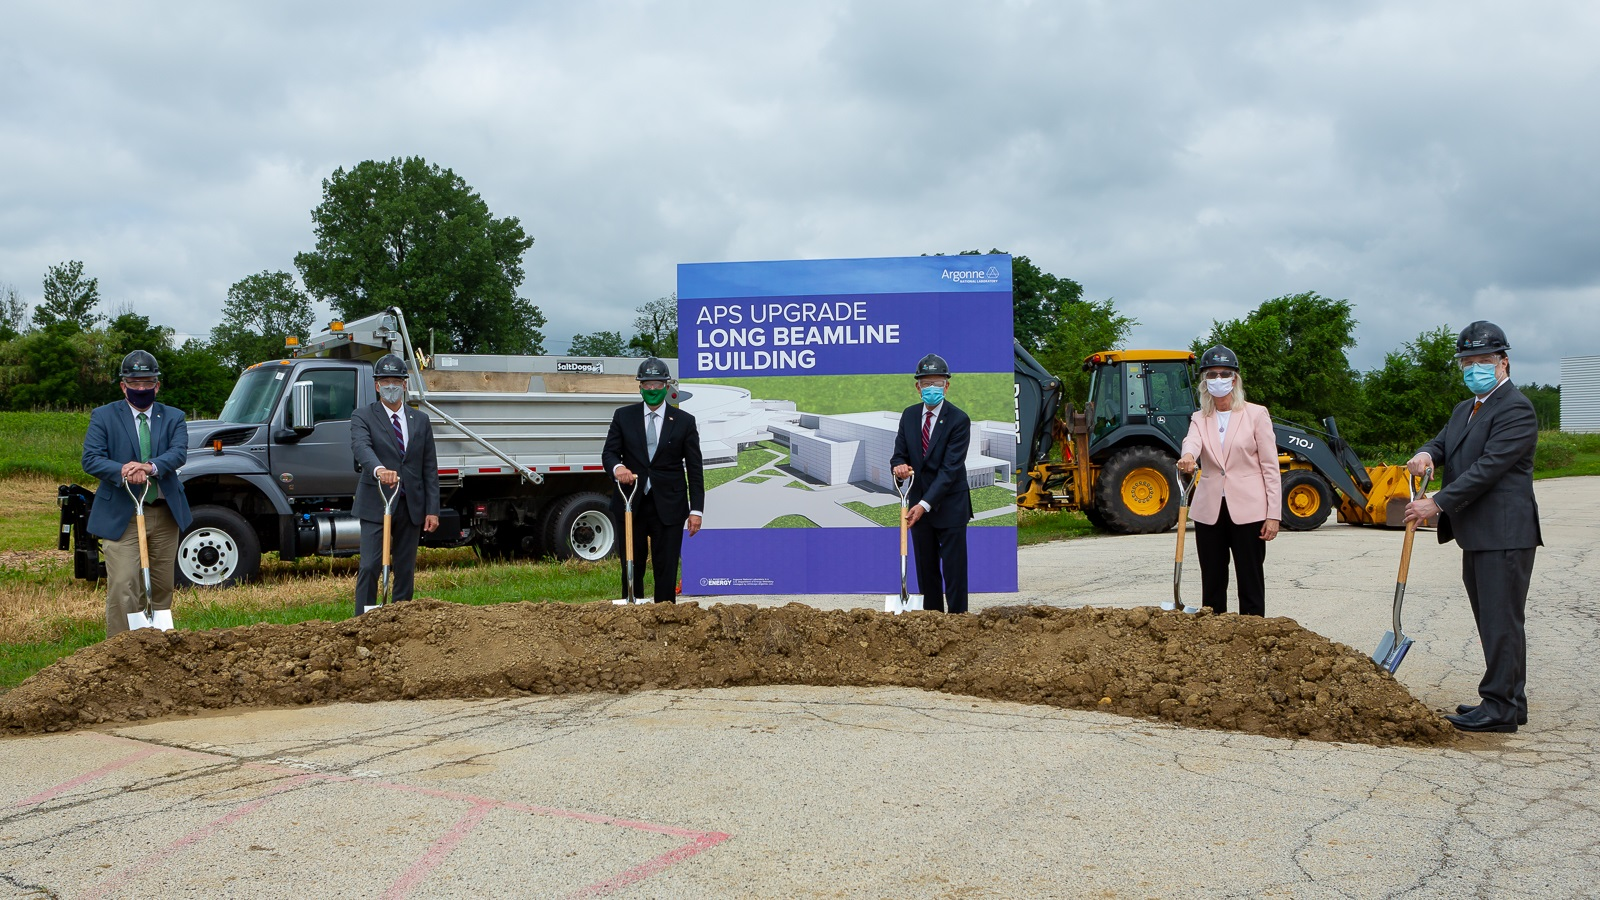 DOE Under Secretary for Science Paul Dabbar, third from left, joined leaders from Argonne, UChicago and the Department of Energy to break ground on the Long Beamline Building, part of the upgrade to the APS. (Image by  Seth Hammond / Argonne National Laboratory.)